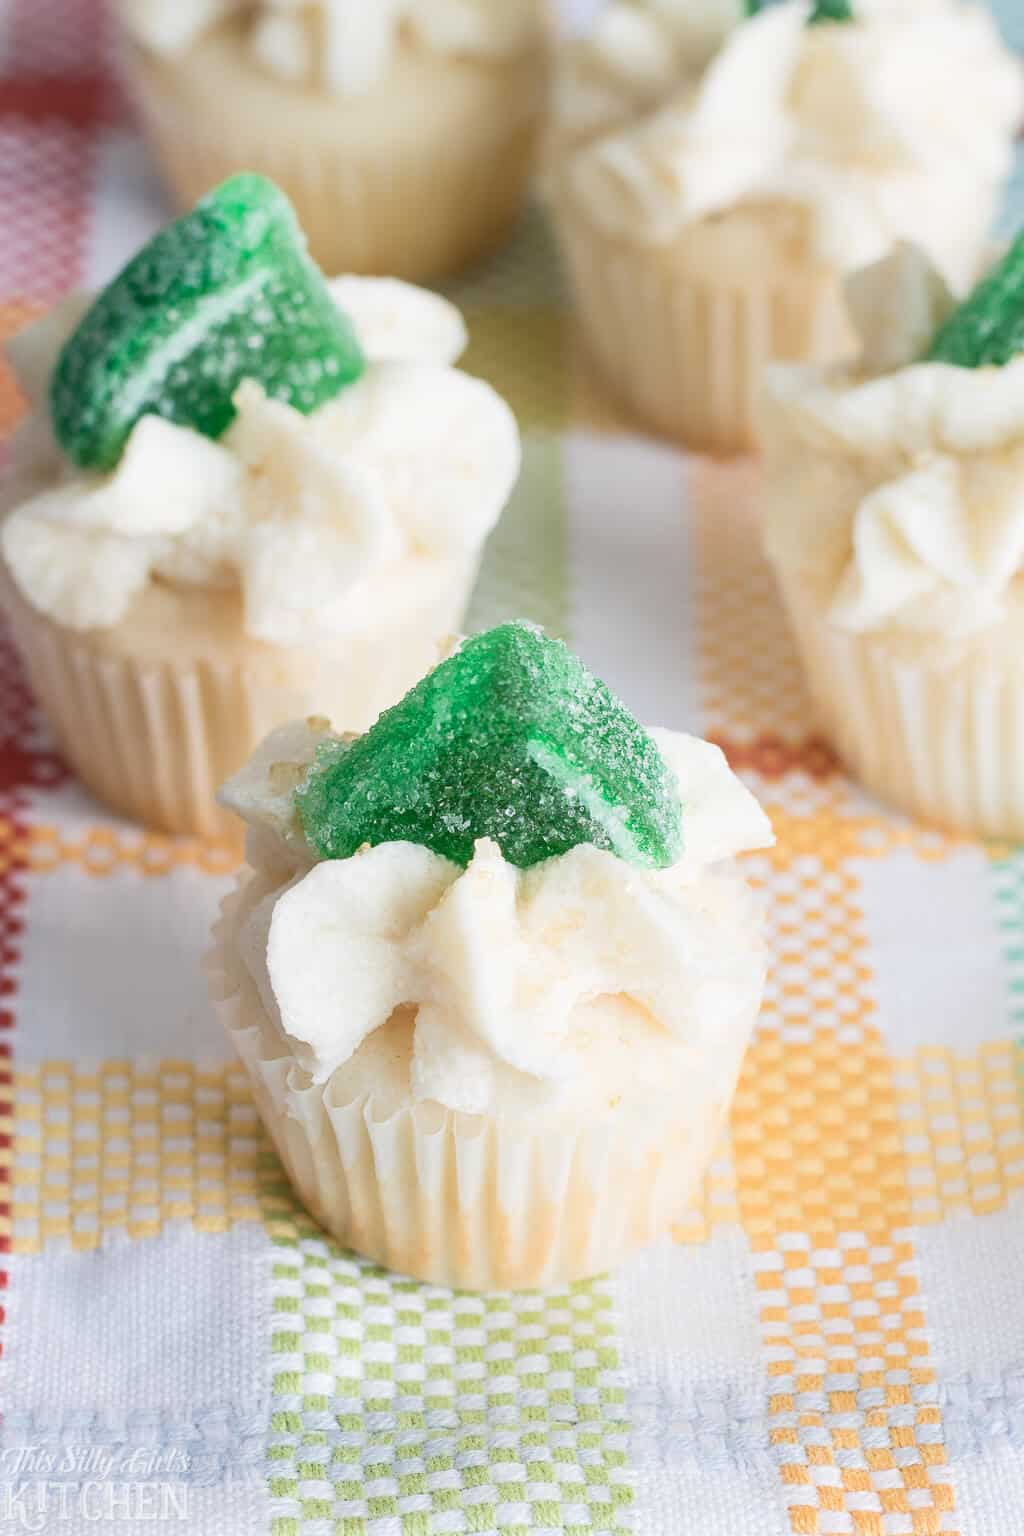 The Best Margarita Cupcakes, festive bite-sized cupcakes with margarita flavors! #Recipe from ThisSillyGirlsKitchen.com #cupcakes #margarita #margaritacupcakes